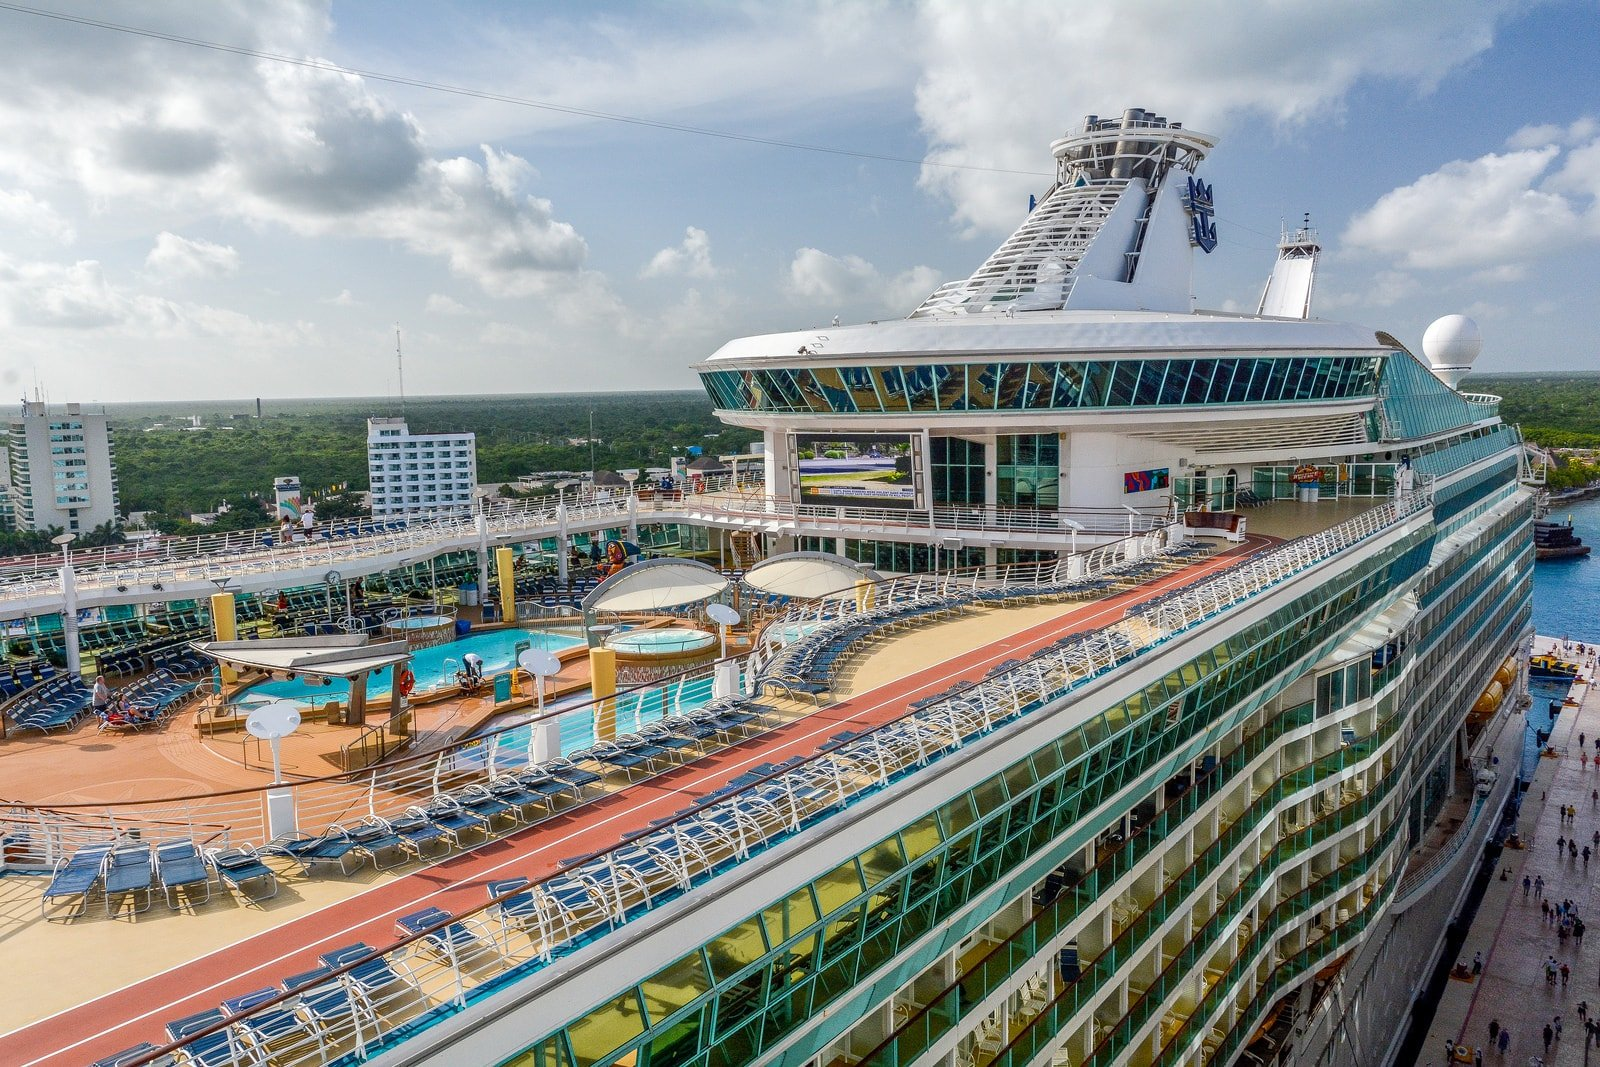 Royal Caribbean Cruise Planning Guide Royal Caribbean Blog - Cruise ship caribbean